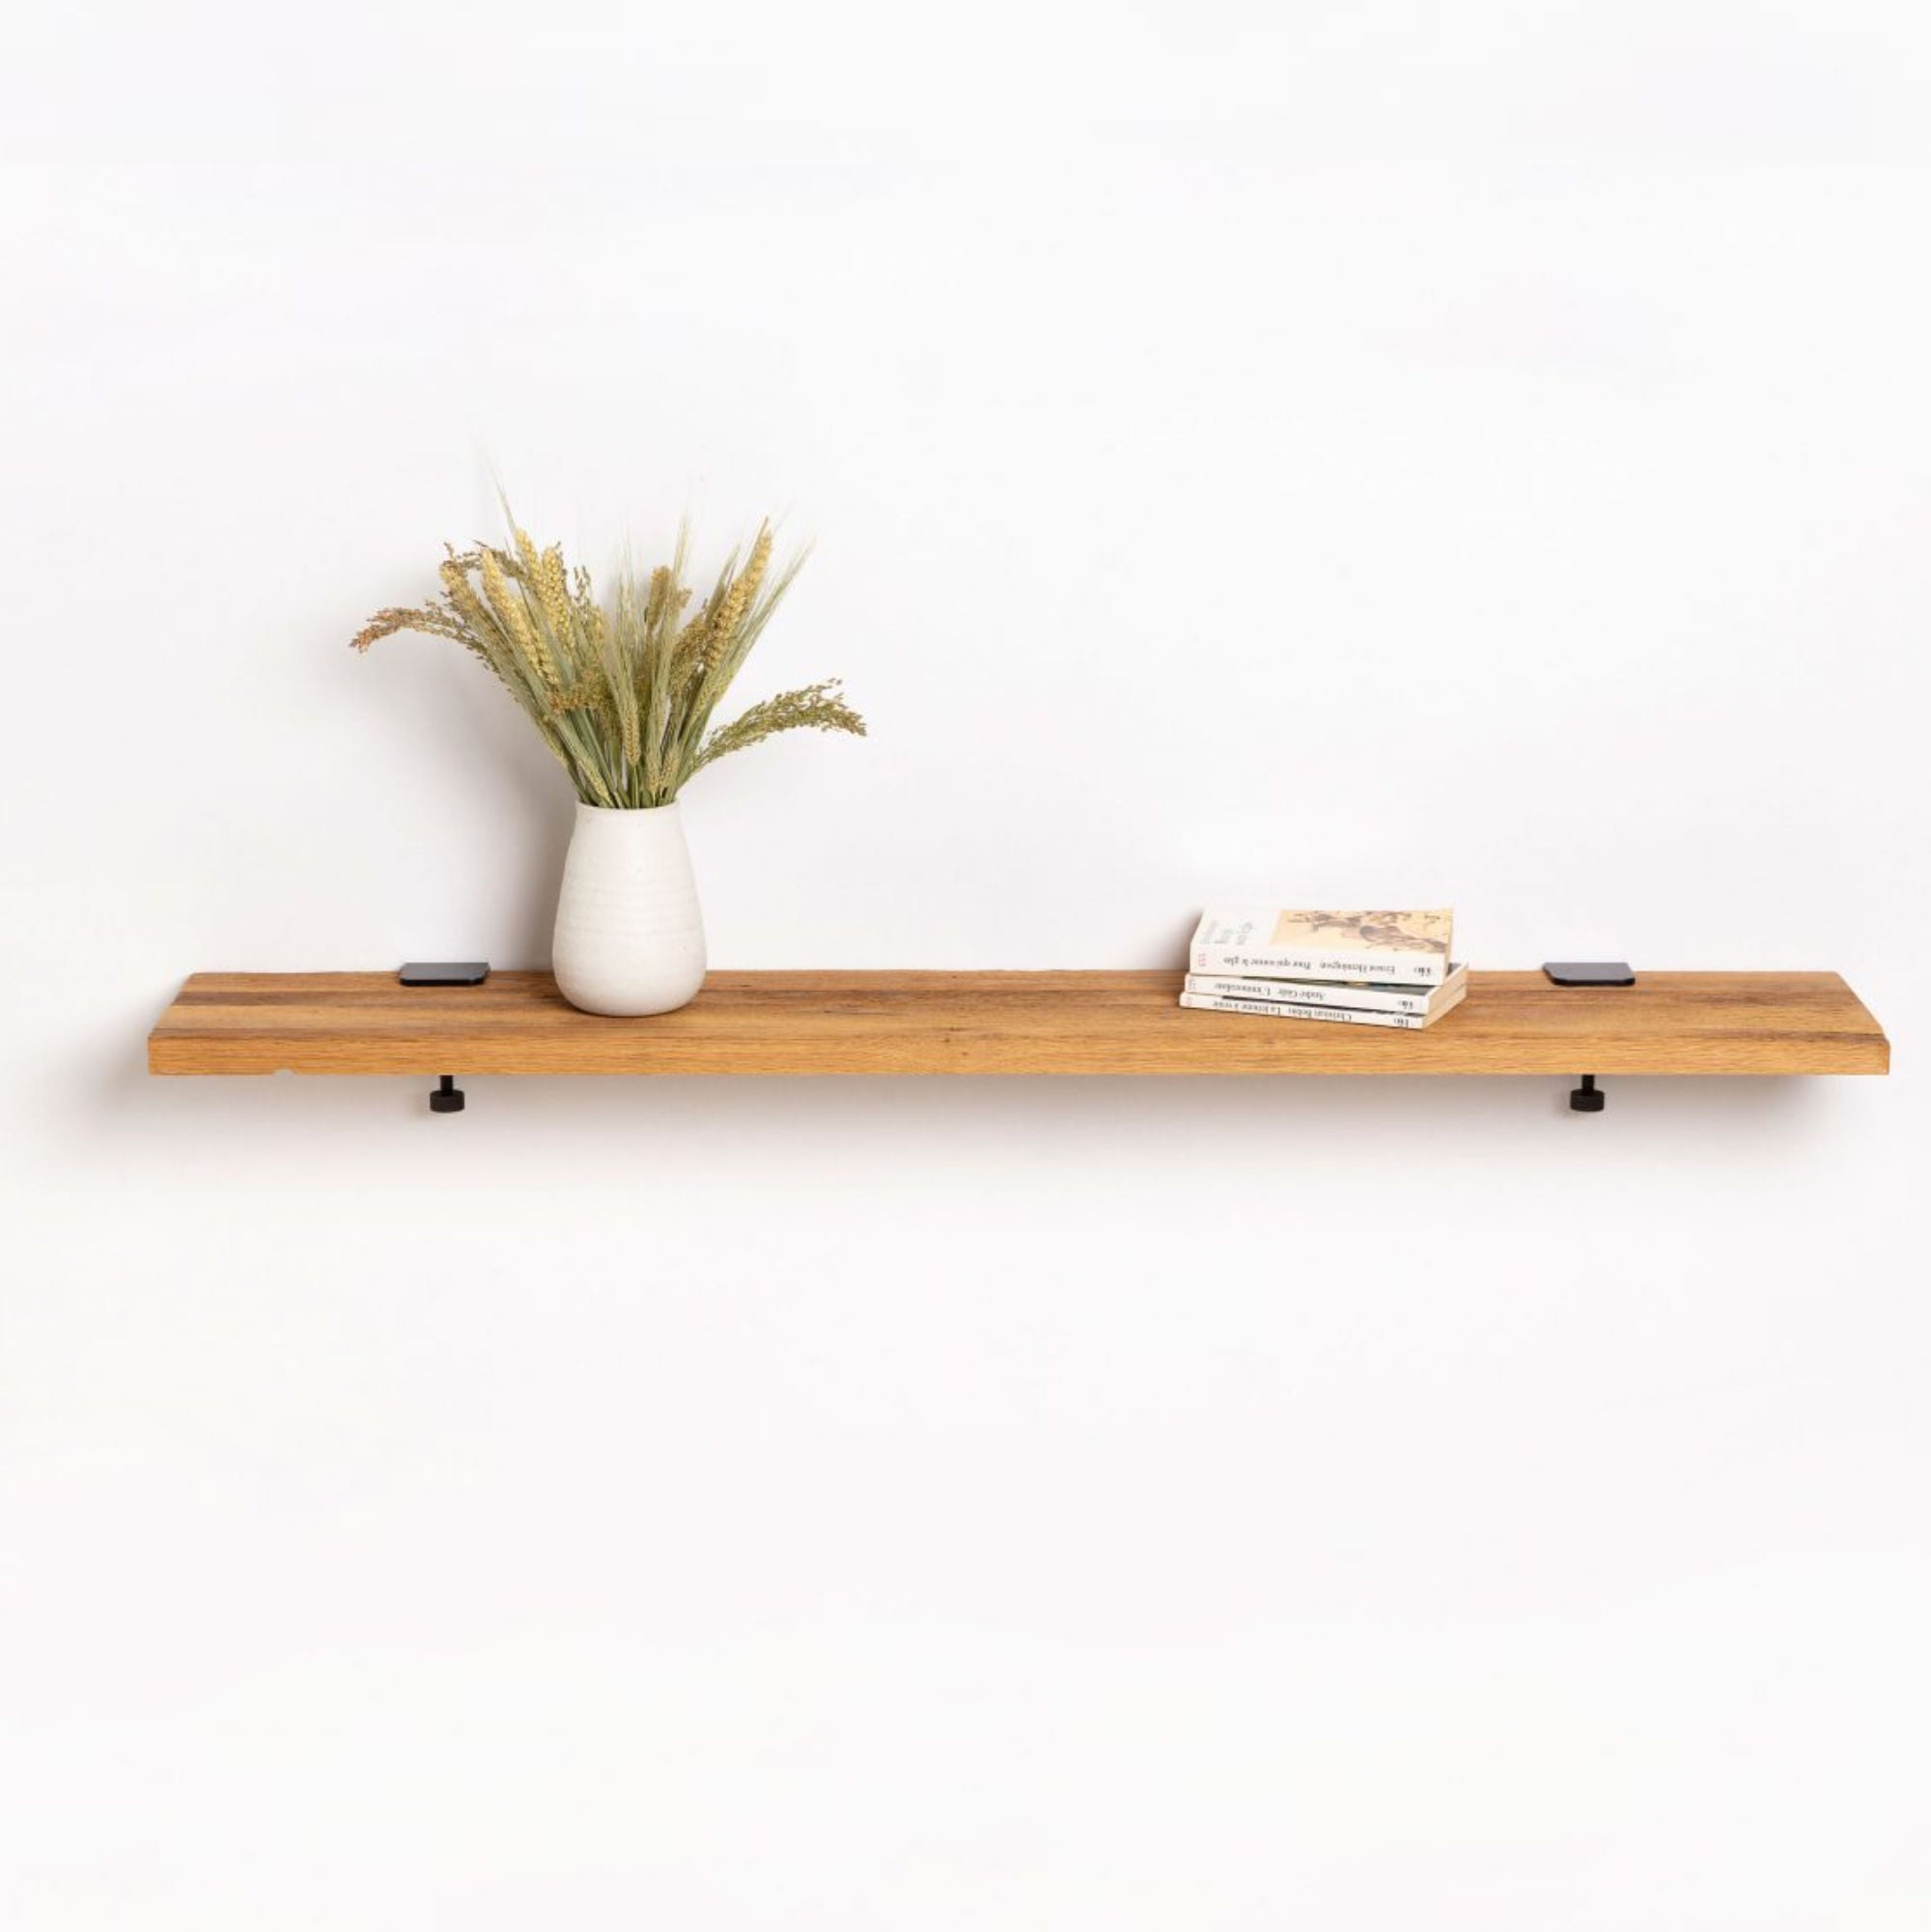 Tiptop Reclaimed wood shelf, 120 * 20cm